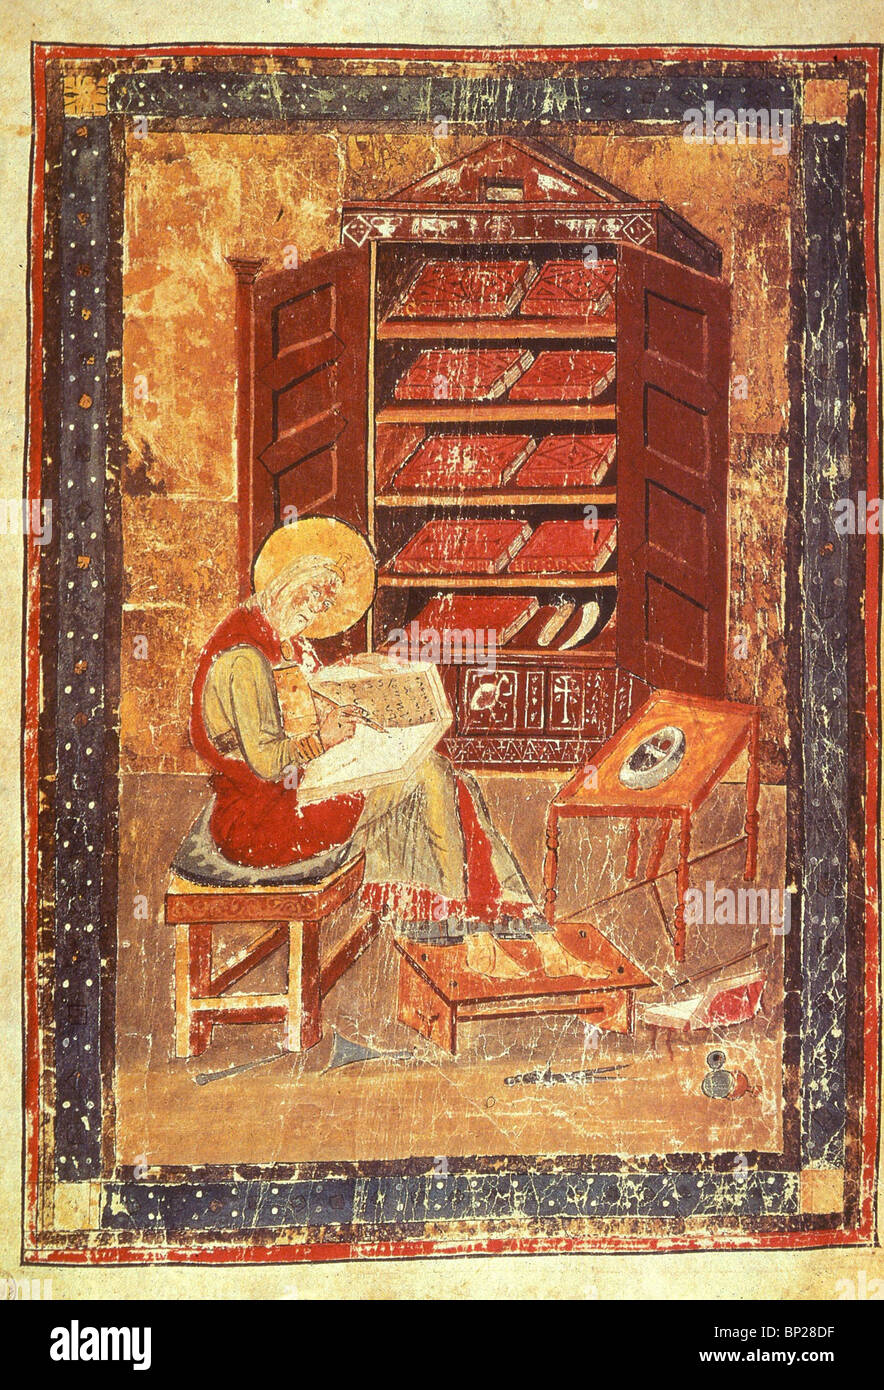 2083. EZRA THE SCRIBE, ILLUSTRATION FROM A 7 - 8TH. C. ILLUMINATED MANUSCRIPT FROM ITALY - Stock Image